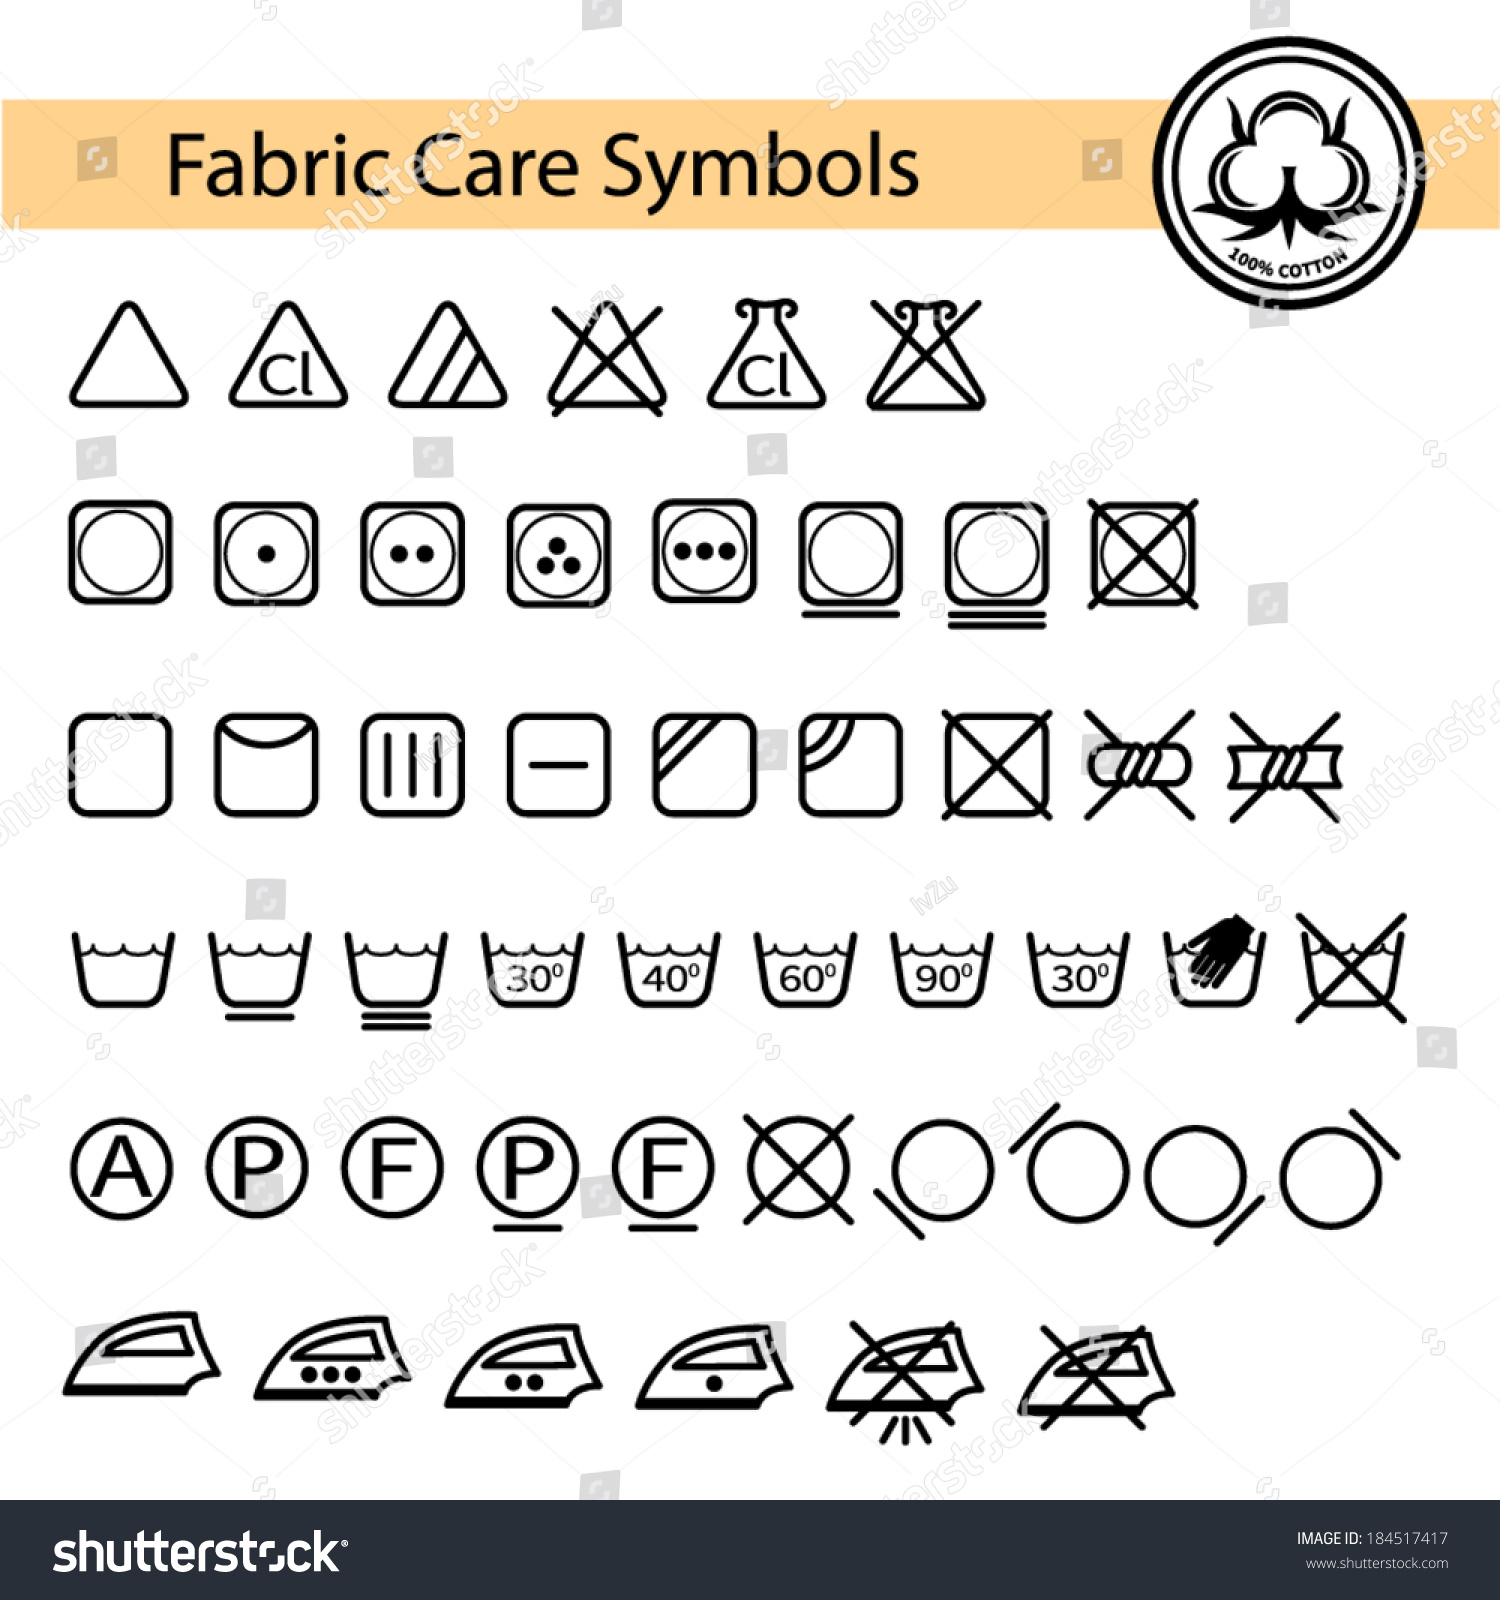 Fabric Care Symbols Stock Vector Royalty Free 184517417 Shutterstock